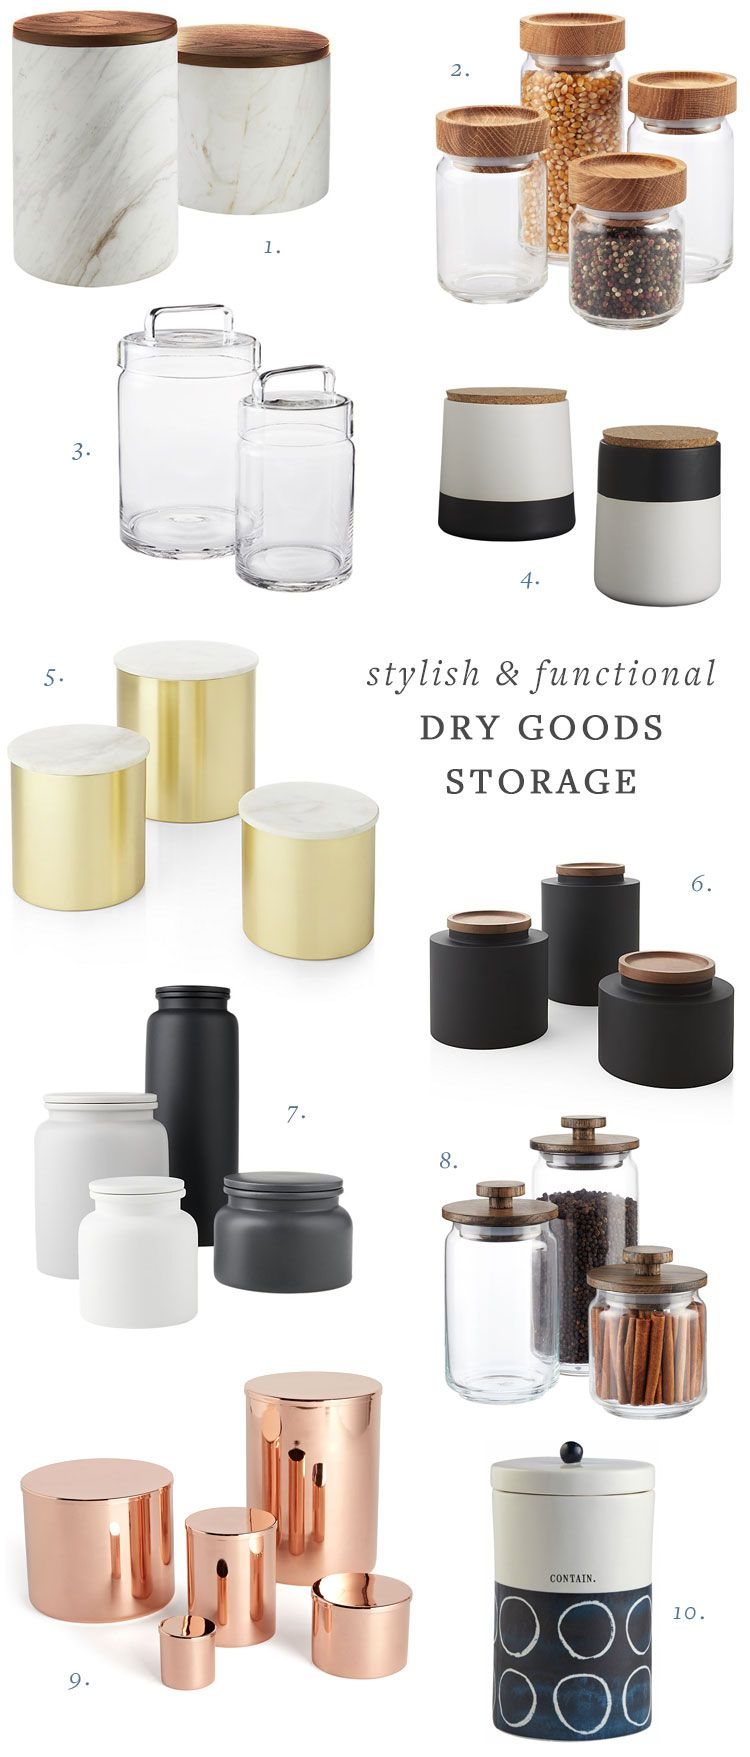 My Search For Stylish (and Functional) Dry Goods Storage Containers. Full  Source List On Jojotastic.com #foodstorage #canisters #kitchenstorage  #smallspaces ...